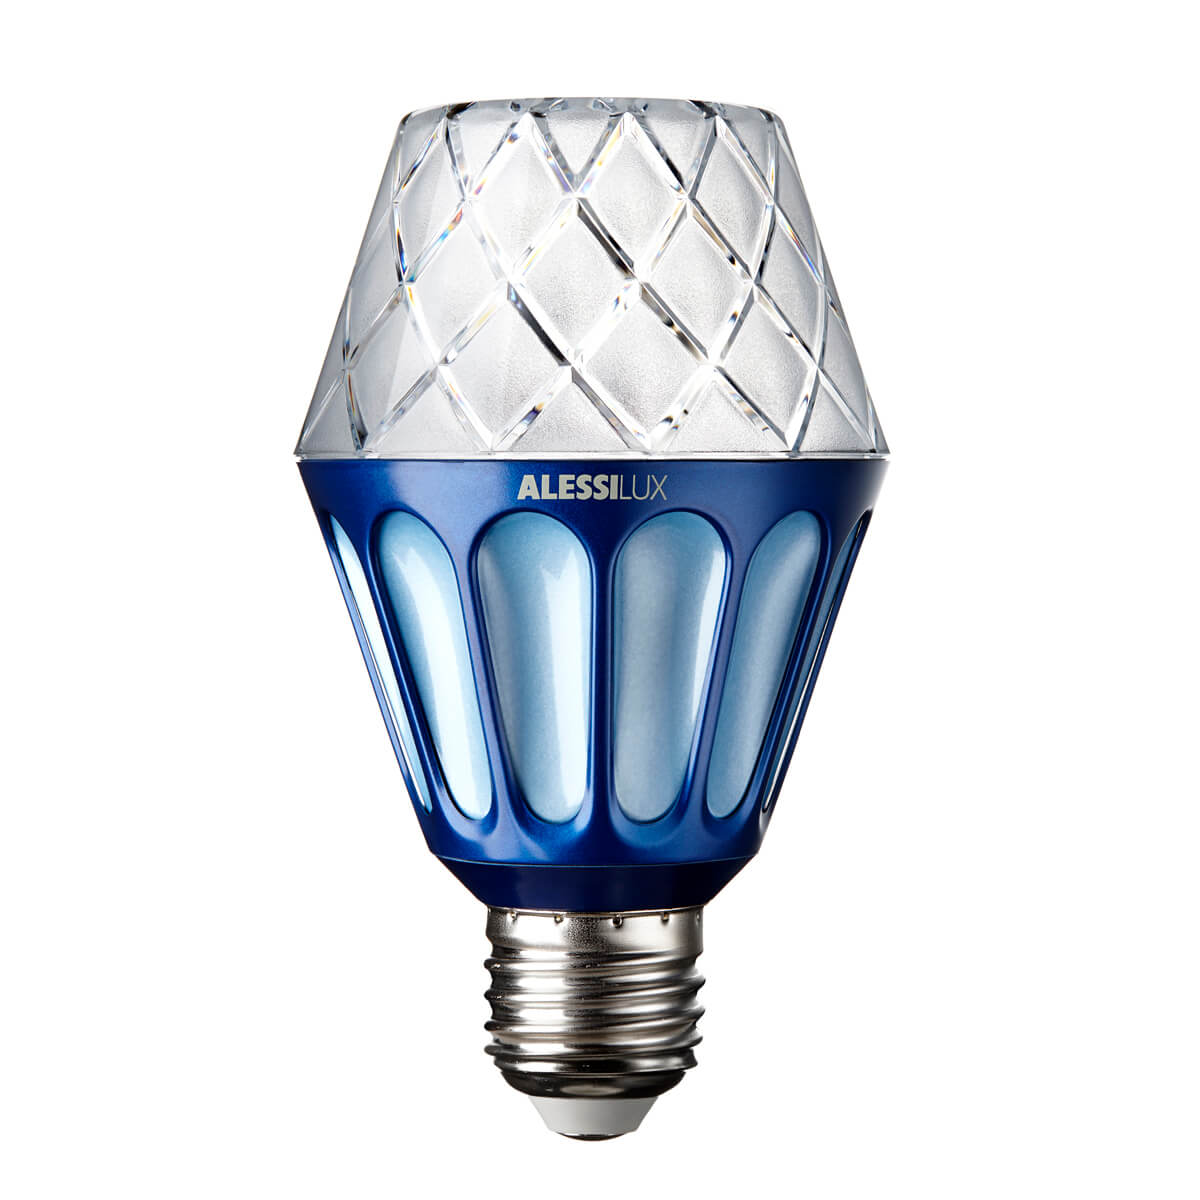 Vienna, LED light bulb for Alessilux blue